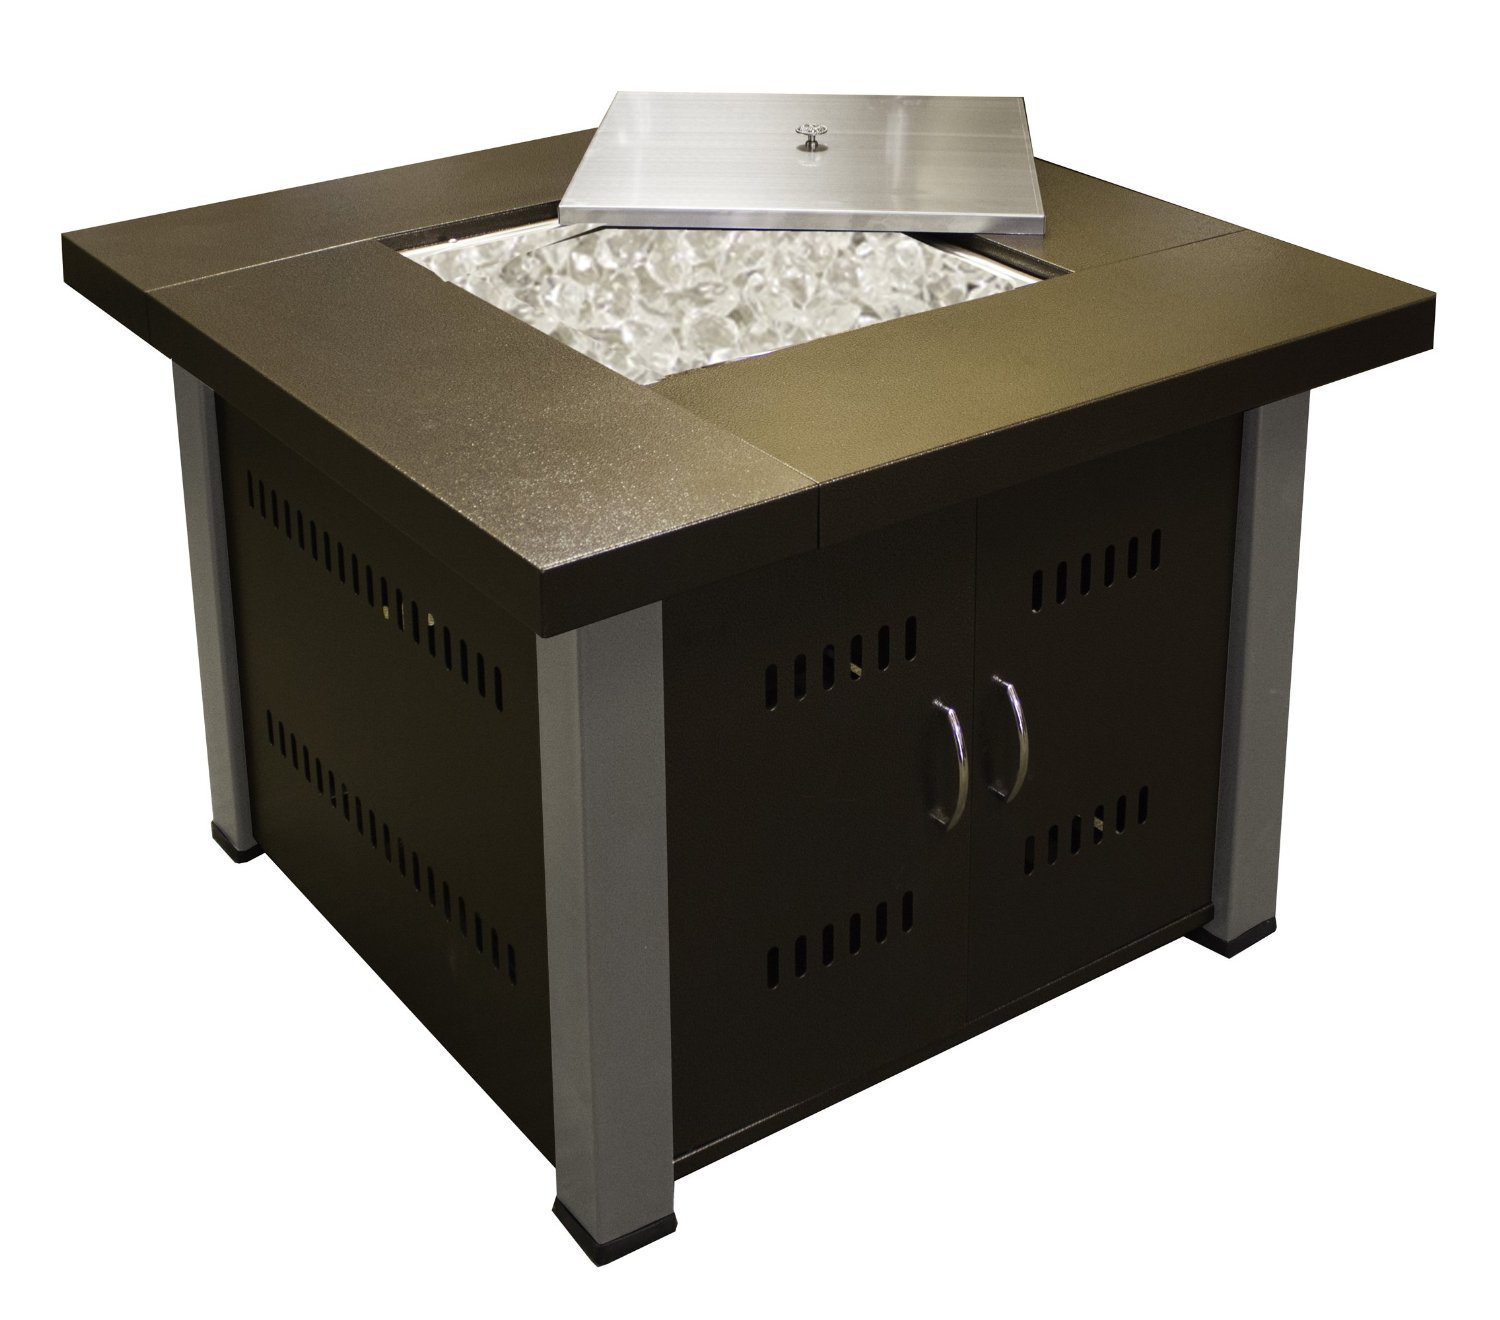 Square Gas Fire Pit Table Outdoor Propane Patio Furniture